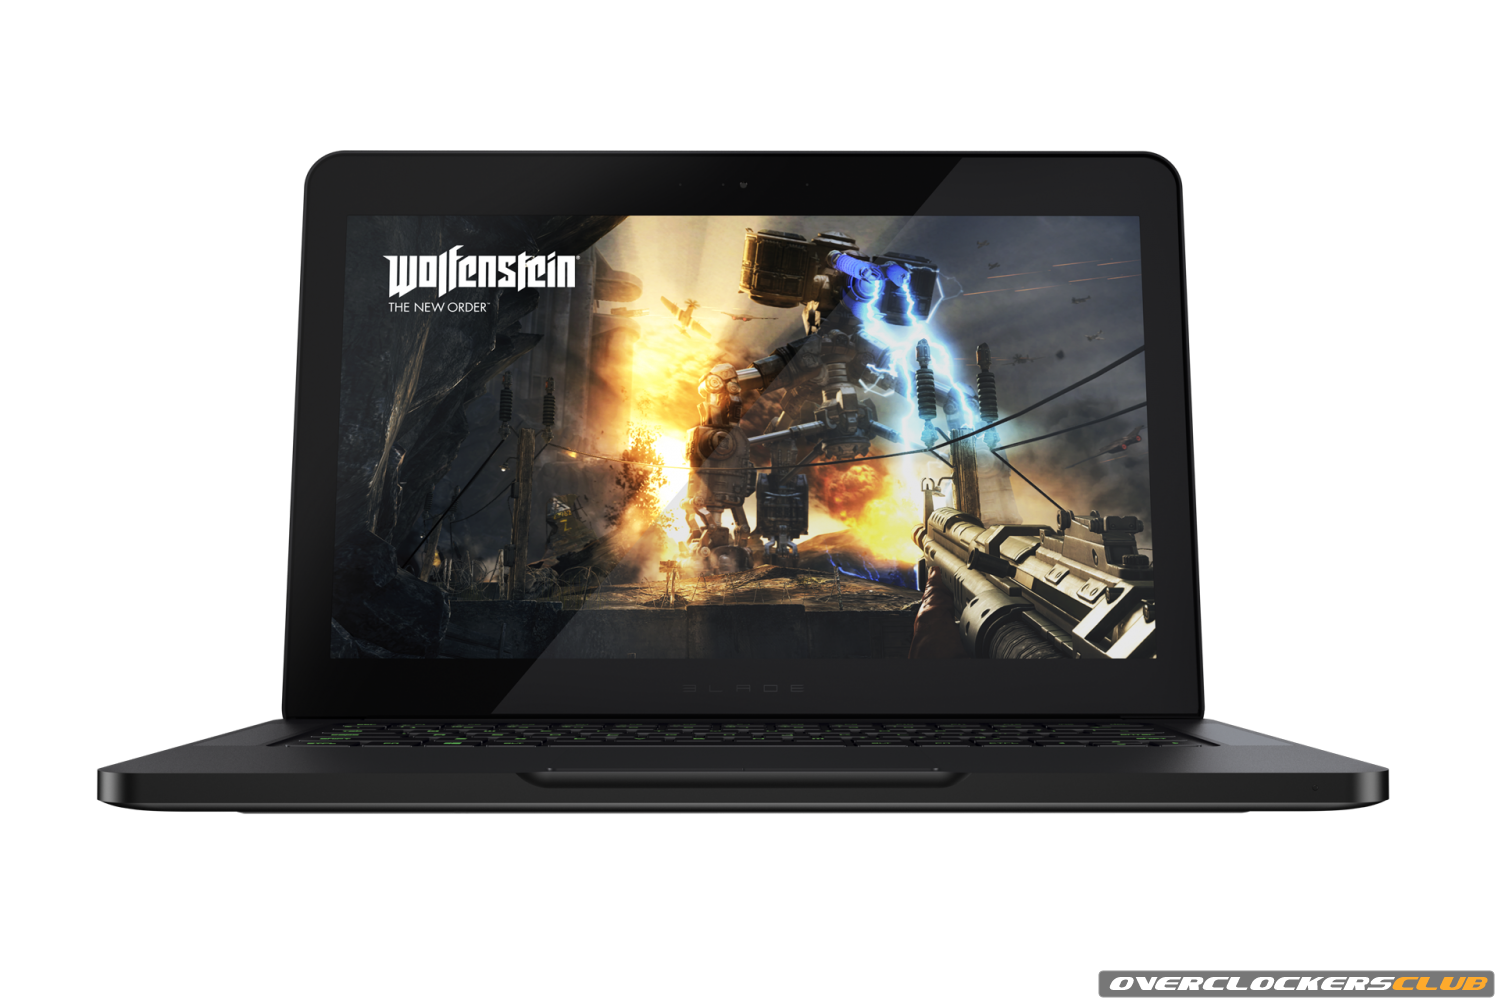 The New Razer Blade Boasts a 3200x1800 QHD+ Resolution, Powered by a NVIDIA GeForce GTX 870M GPU